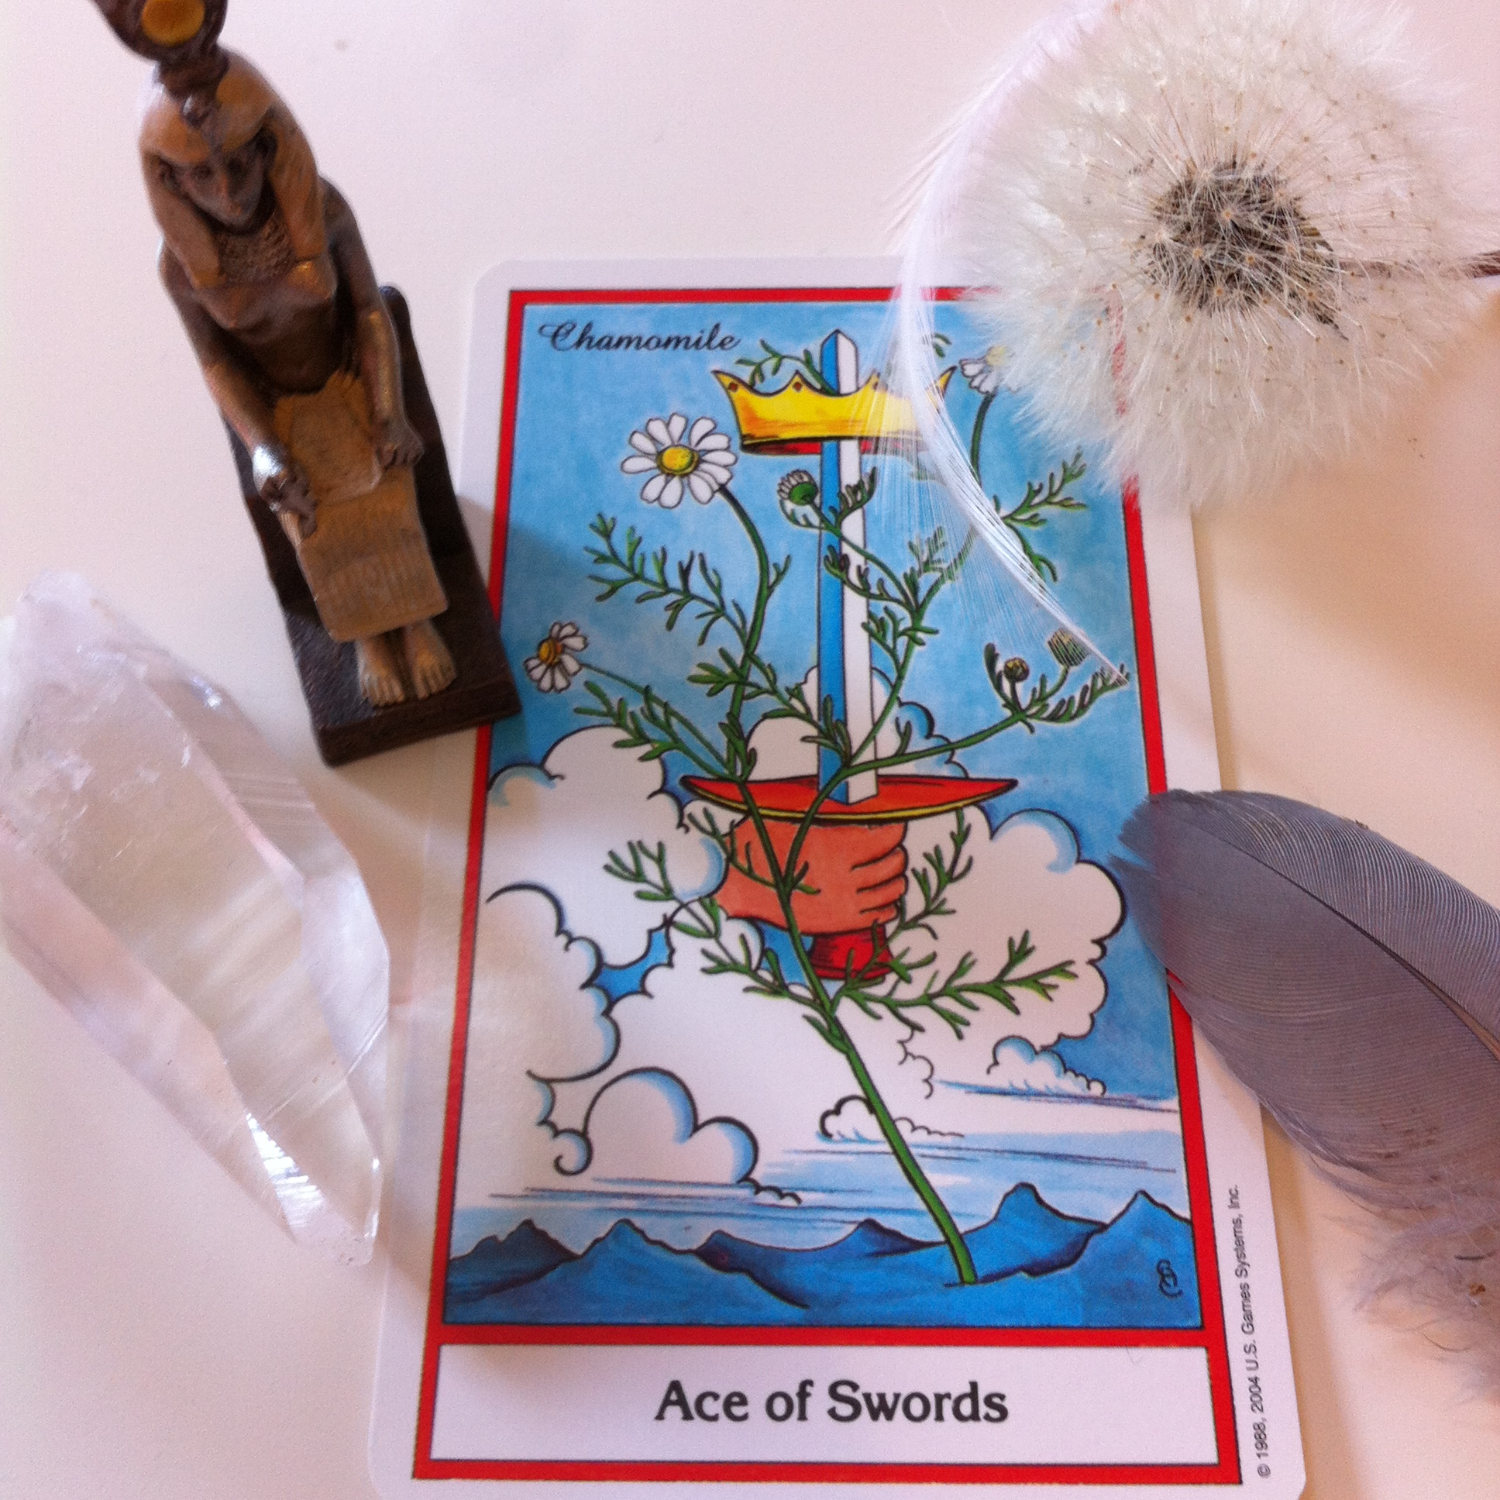 Ace of Swords herbal Tarot